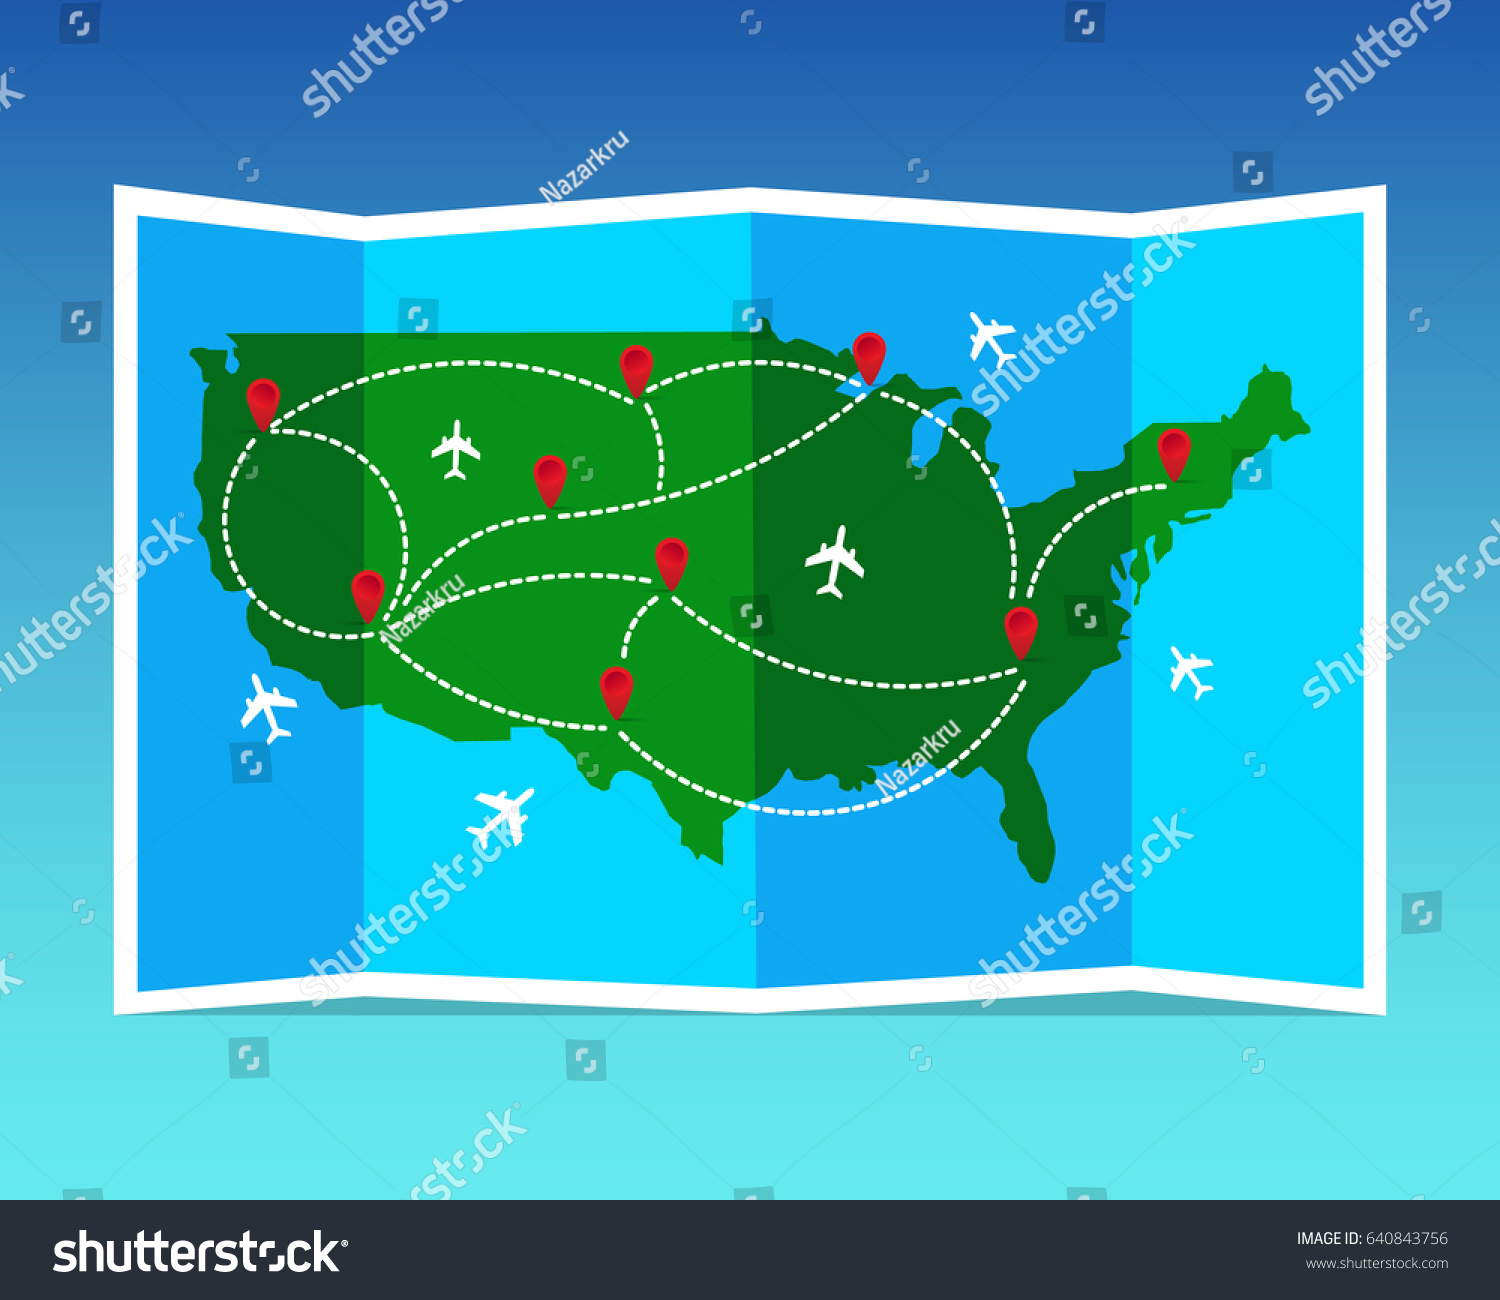 Travel tourism map united states america stock vector 640843756 travel and tourism map united states of america folded world map with airplanes and markers gumiabroncs Choice Image